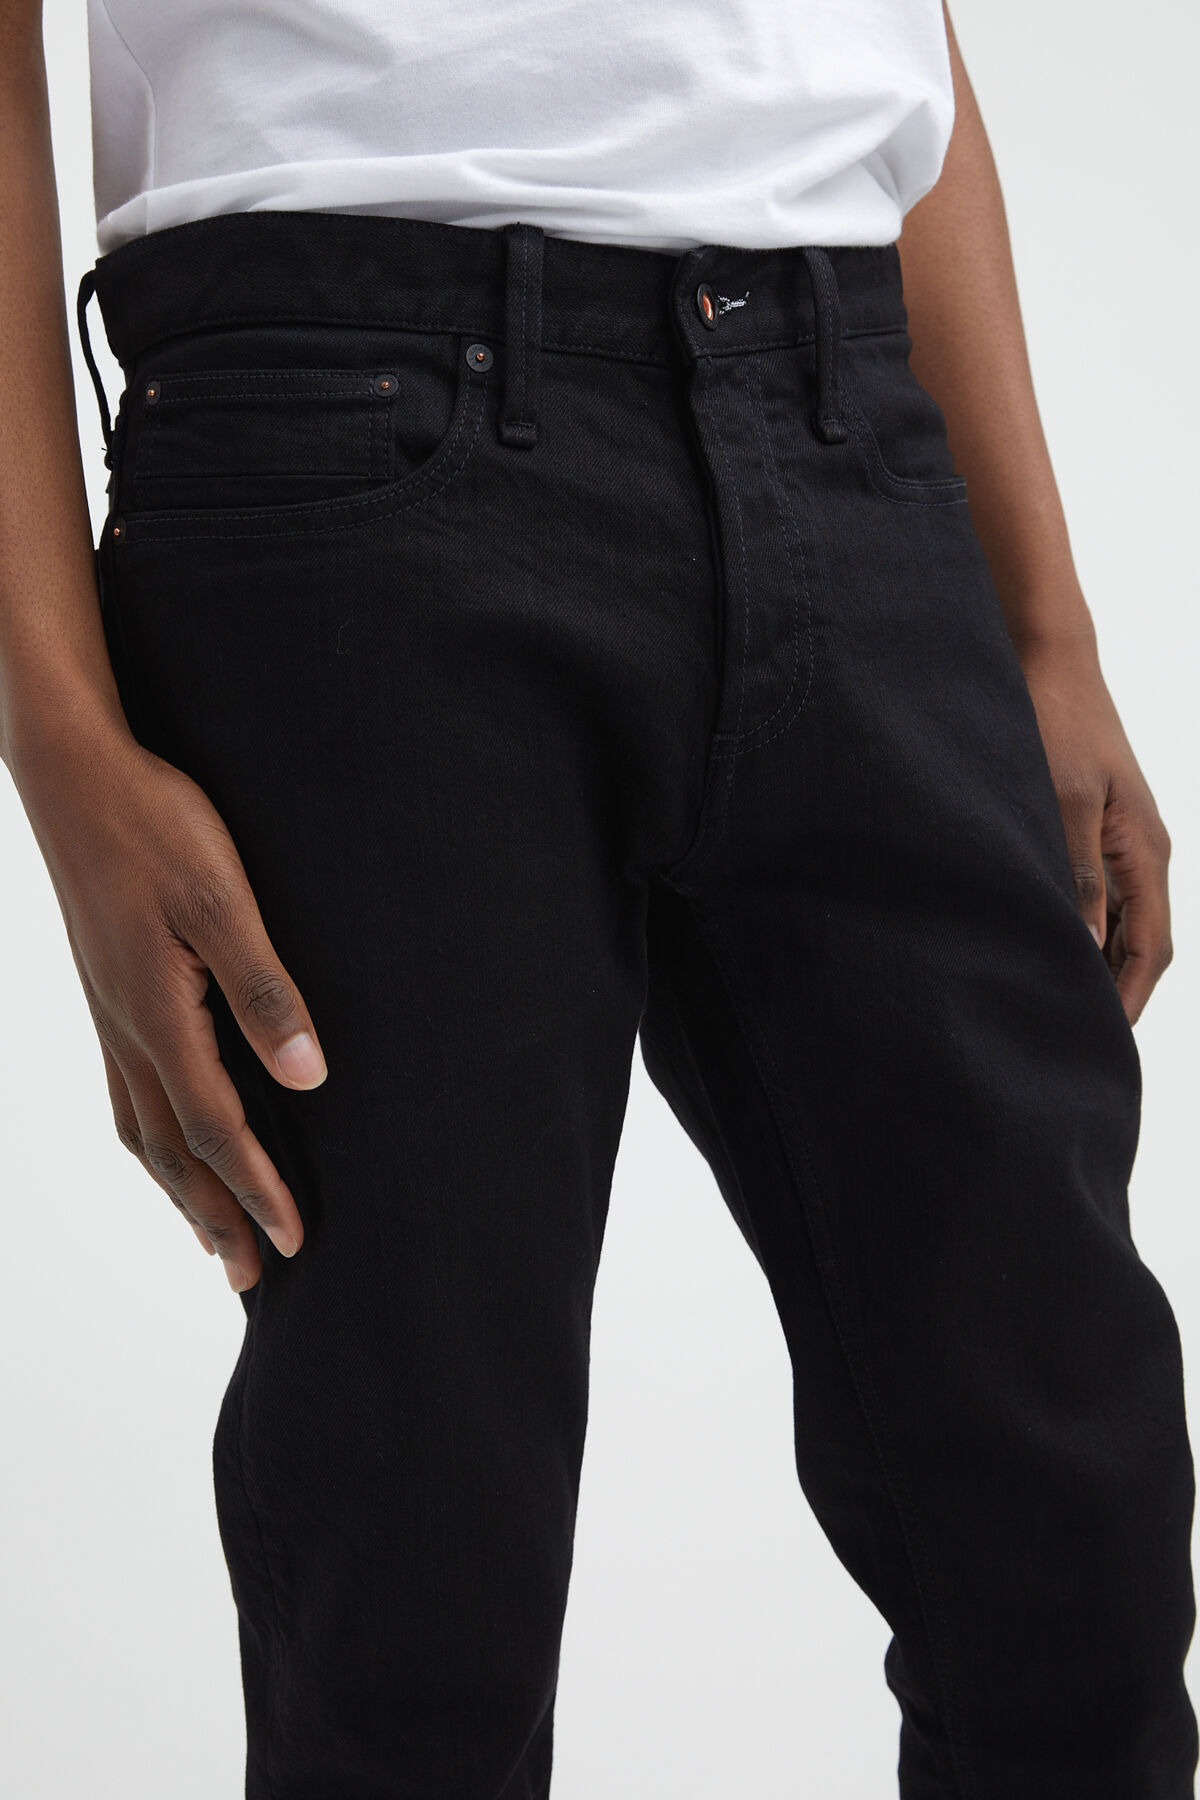 RAZOR Double Black Stretch Denim - Slim Fit